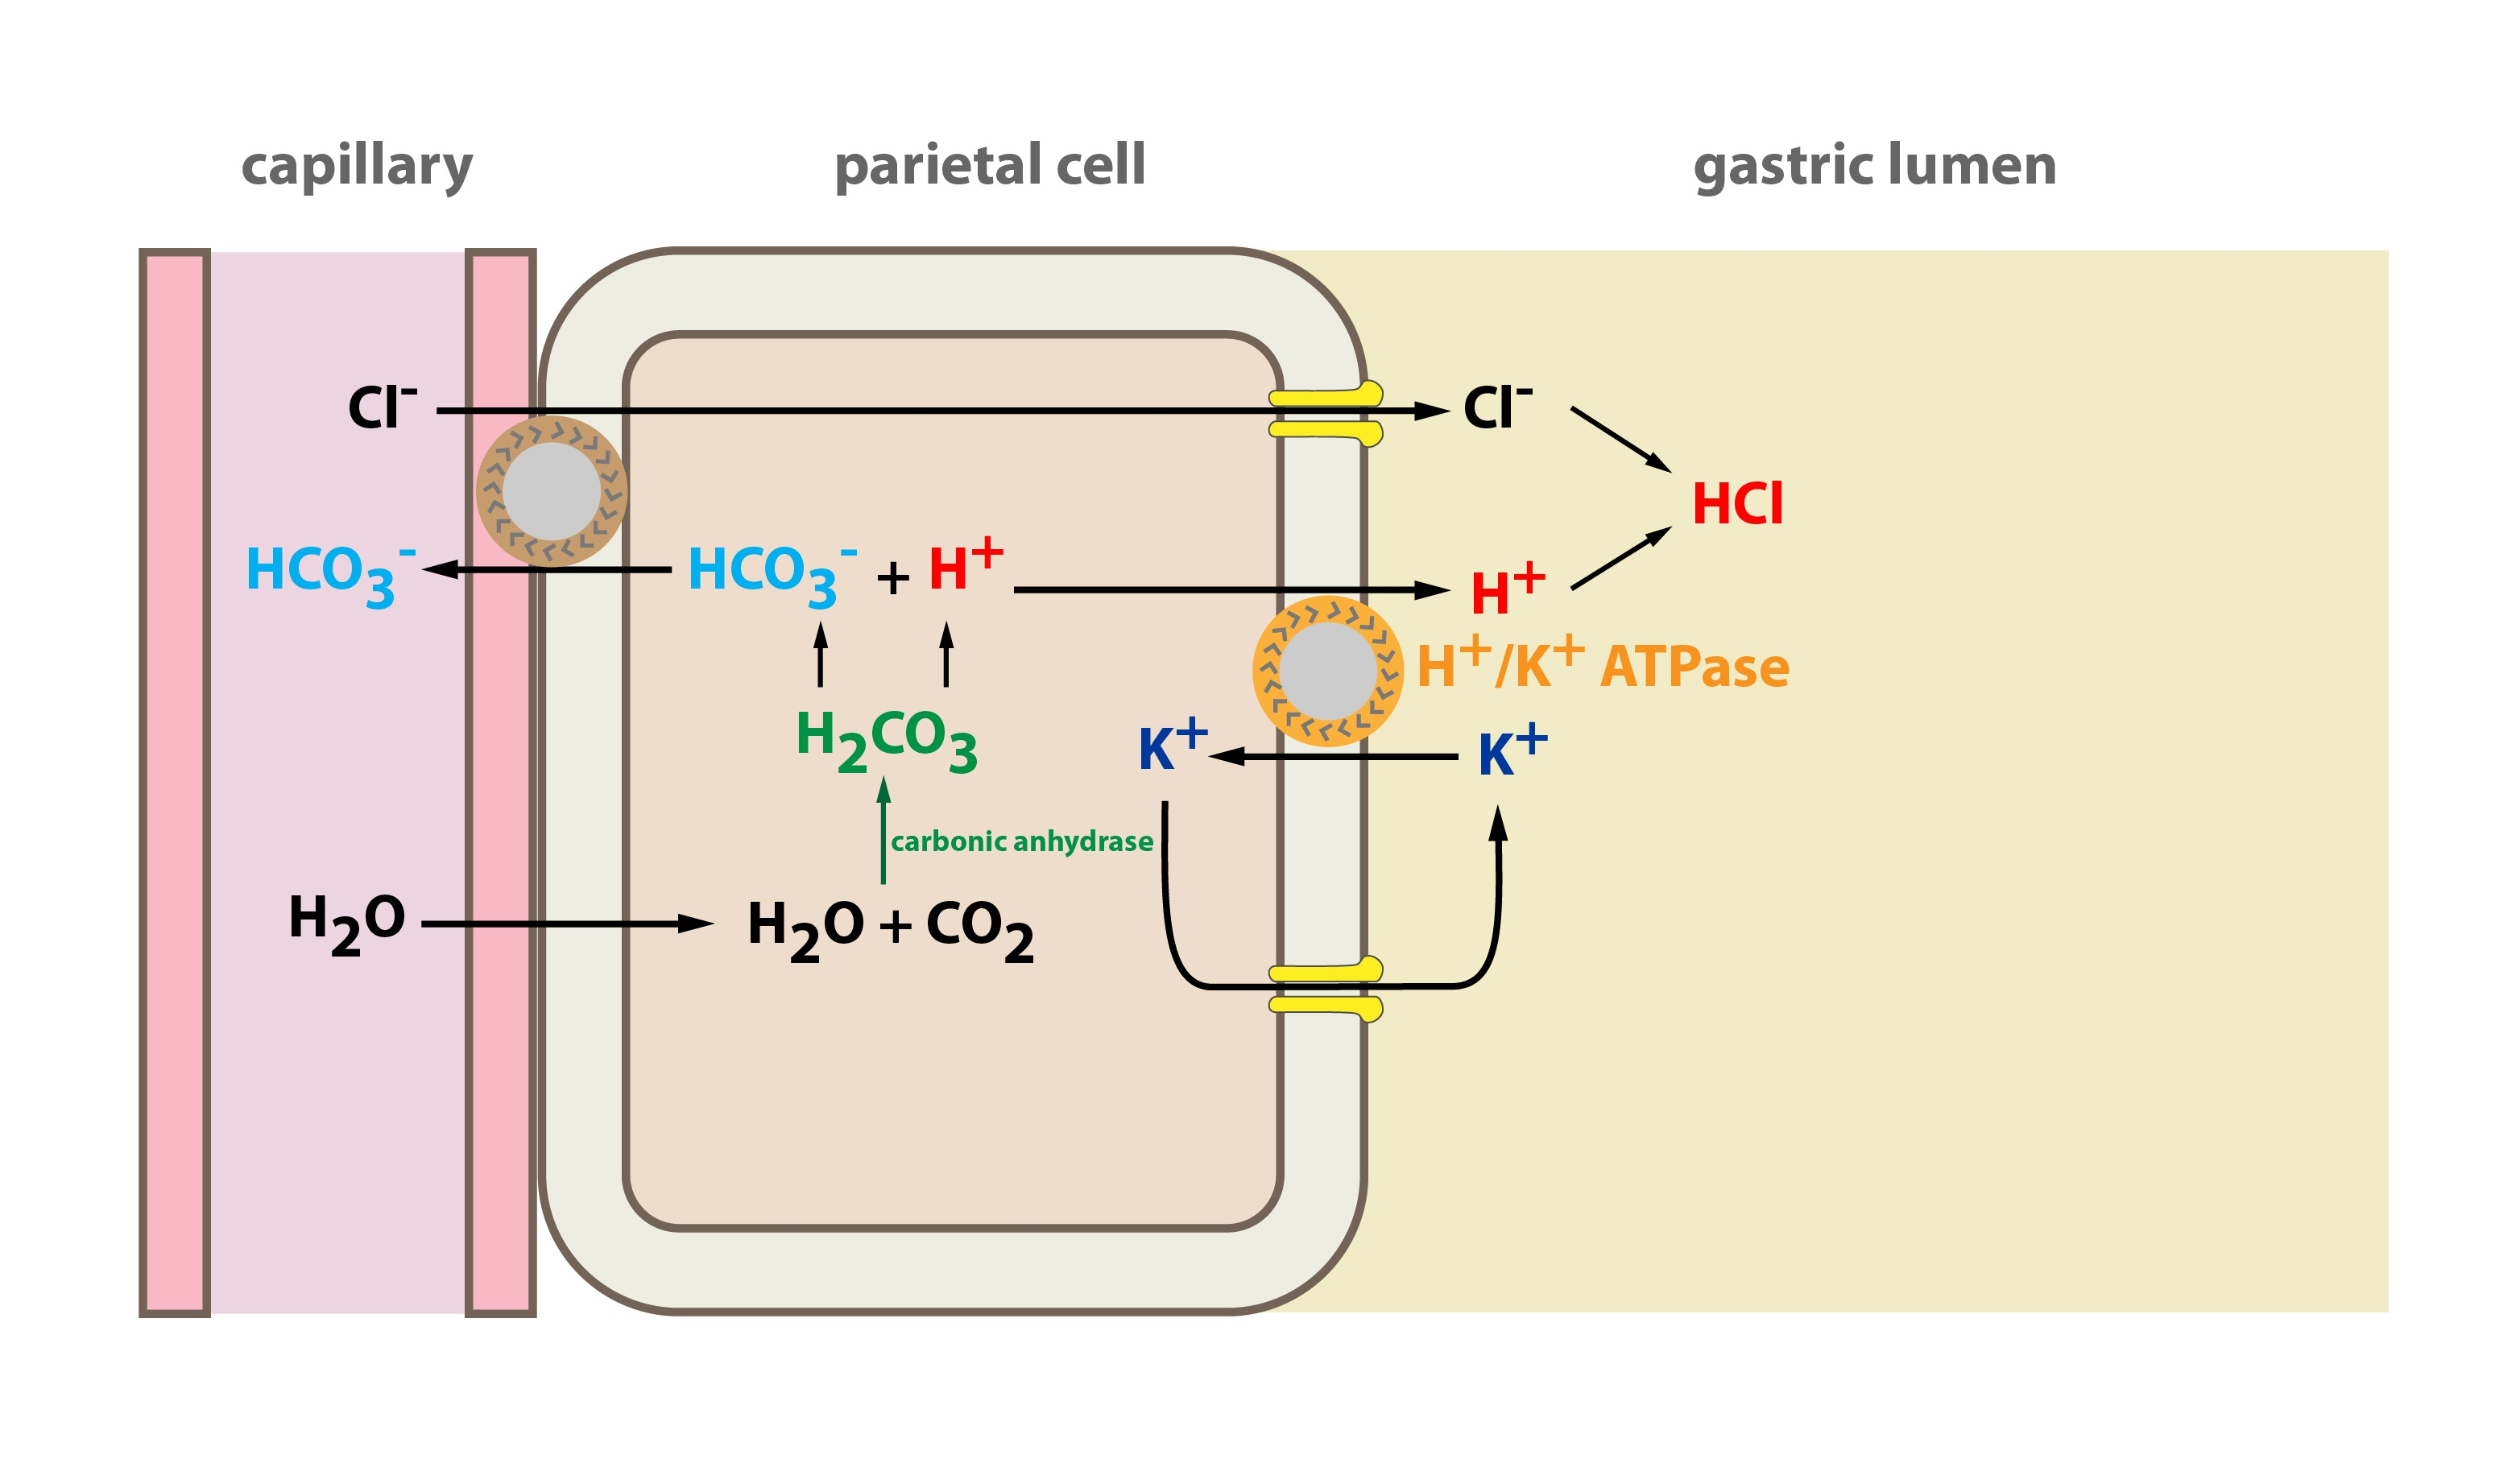 3 compartmentalisation of metabolic pathways functions of cells kapitola 09 03 eng 01 pooptronica